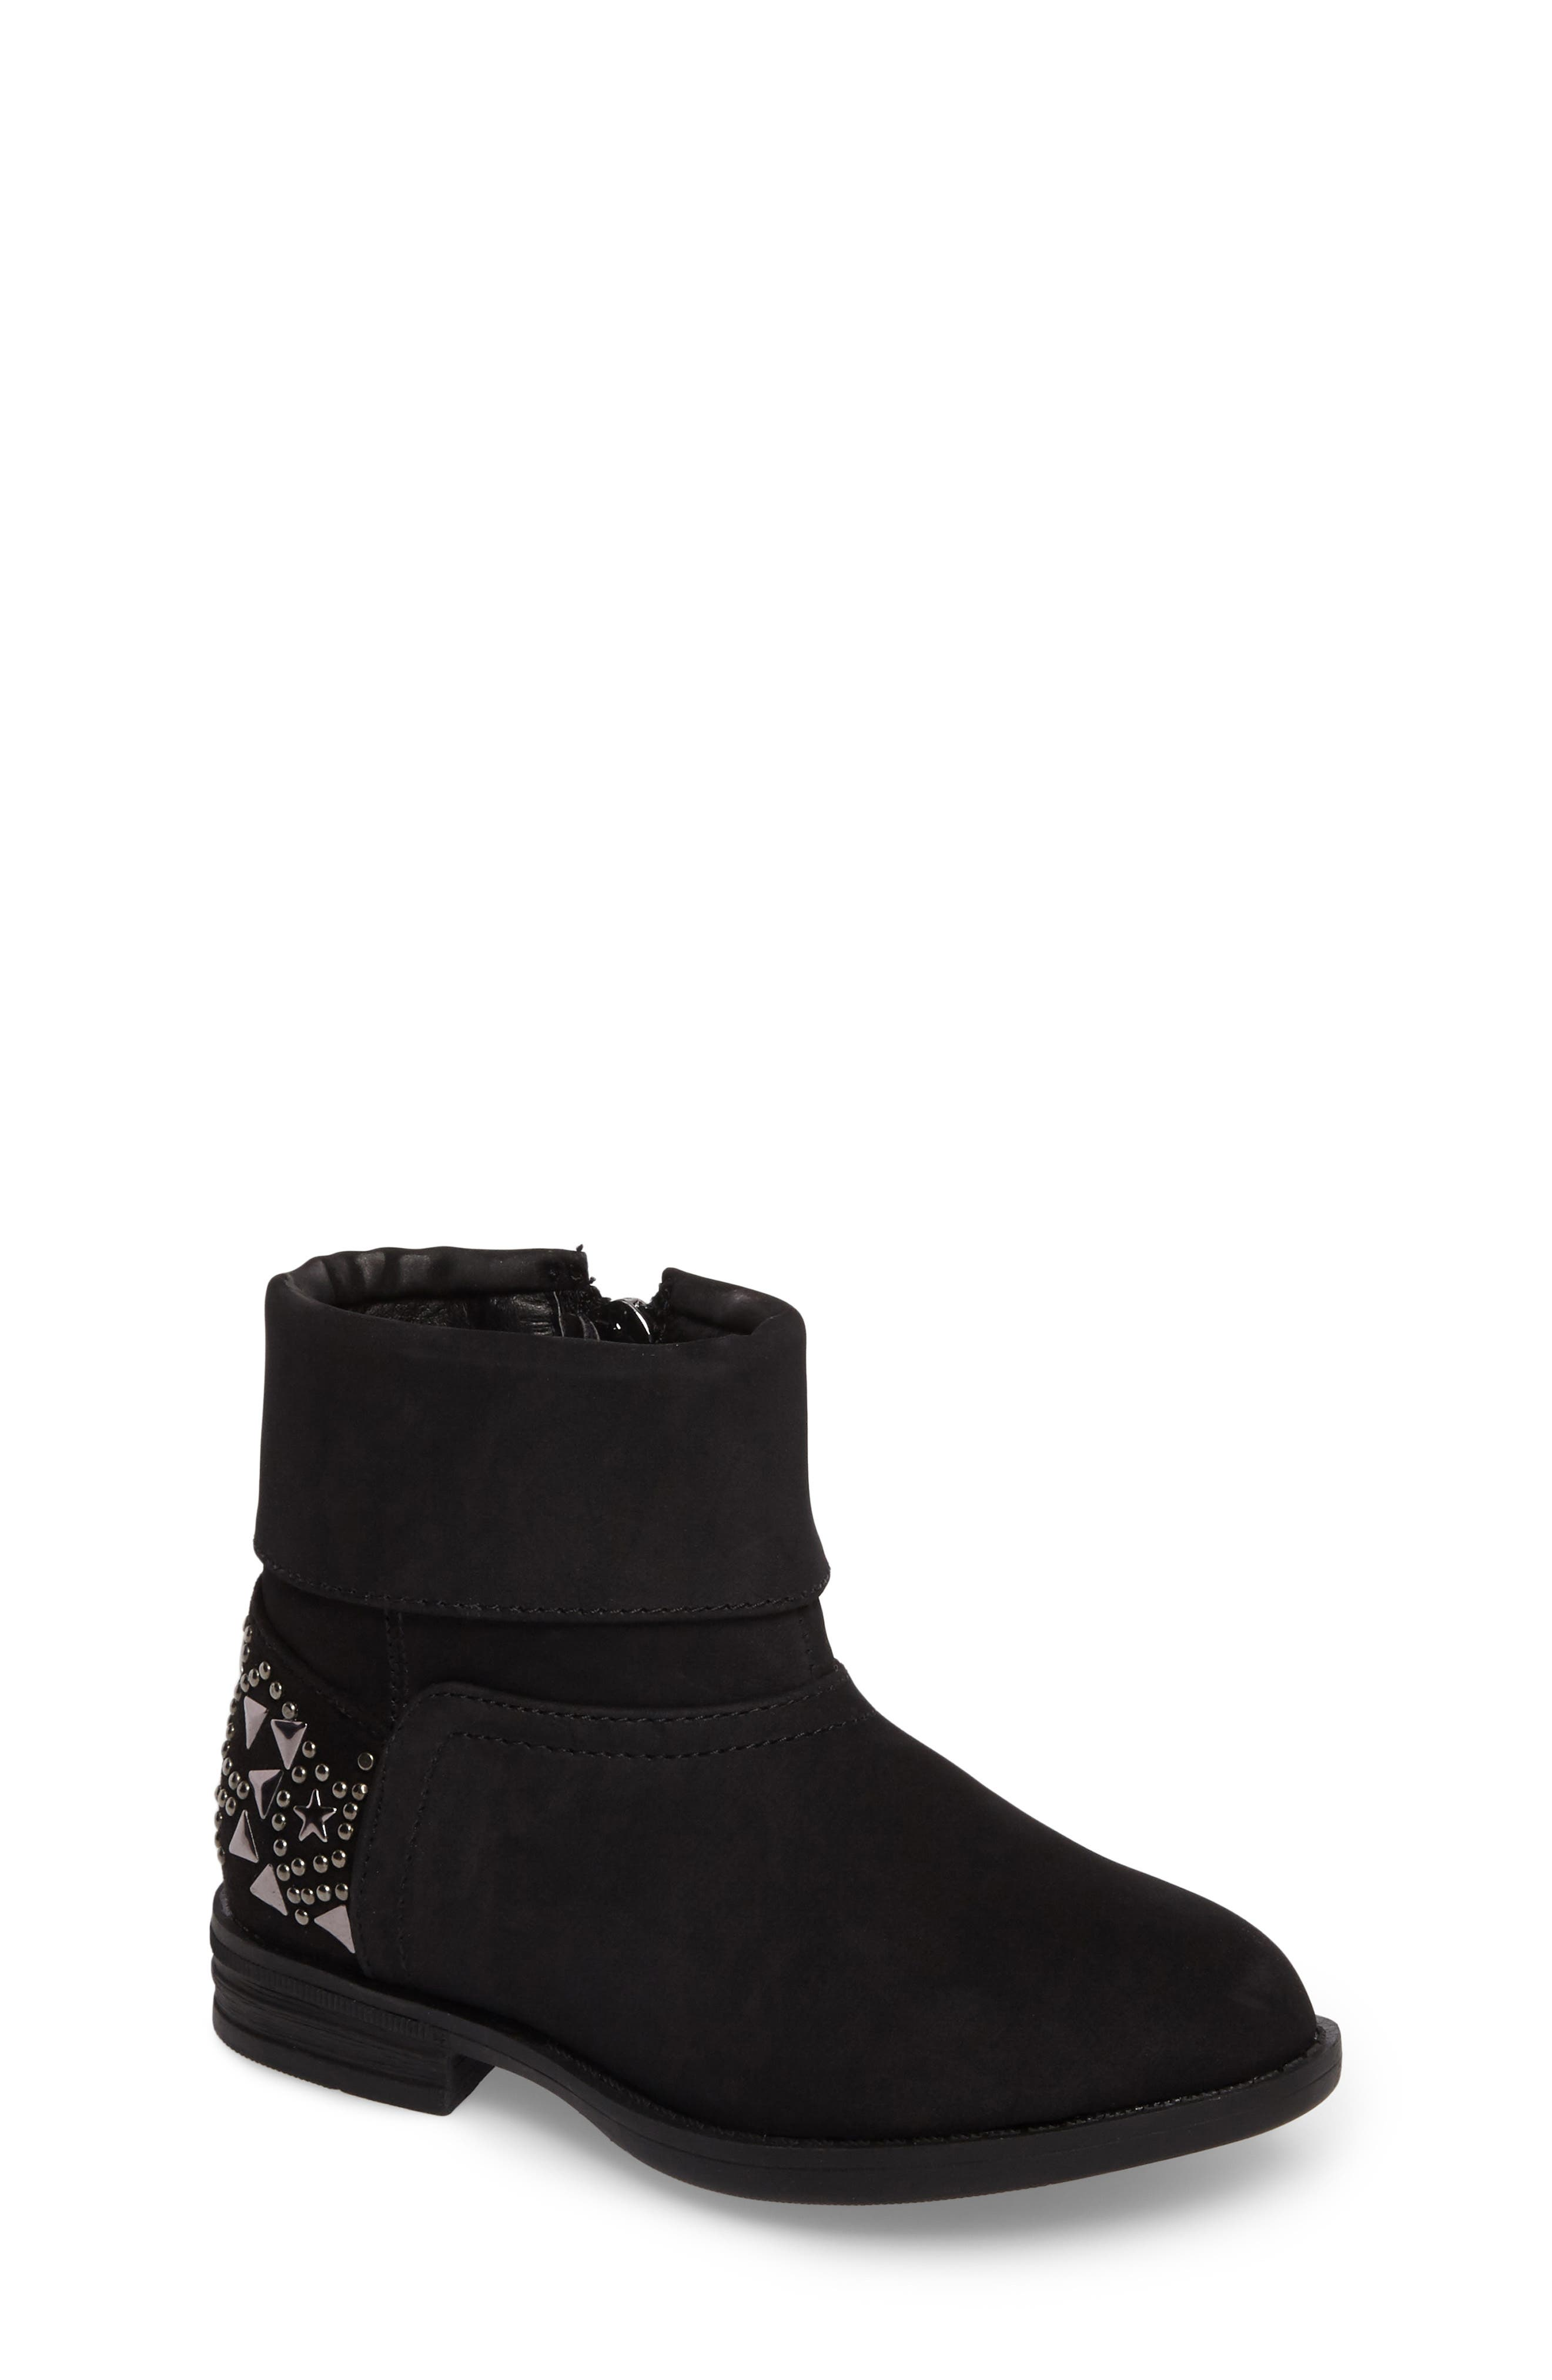 Wild Star Studded Bootie,                             Main thumbnail 1, color,                             001